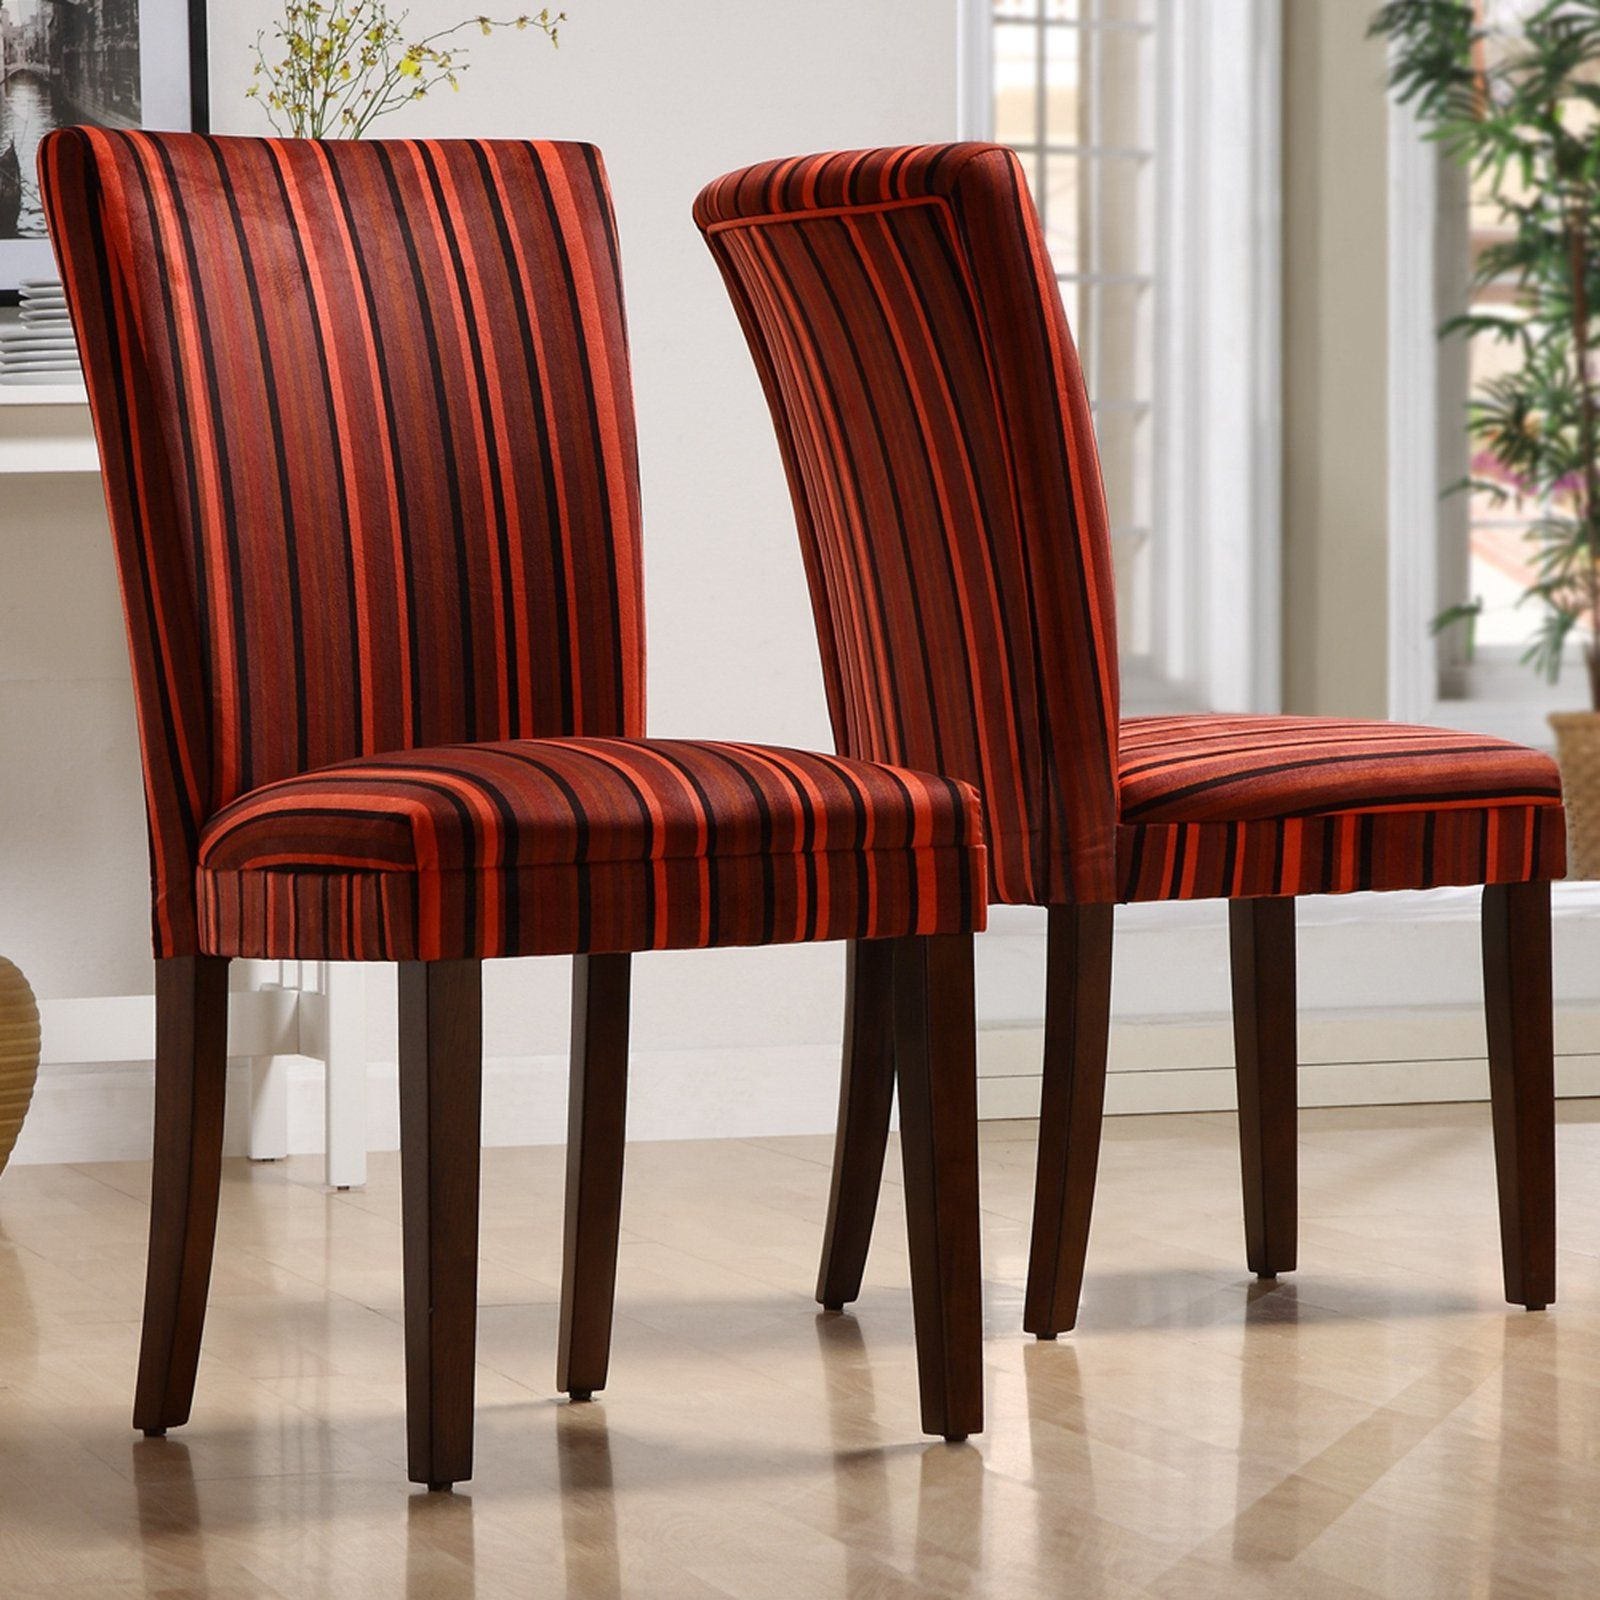 Homelegance Royal Red Striped Design Fabric Parson Chairs  Brown Entrancing Dining Room Chairs Red Decorating Design